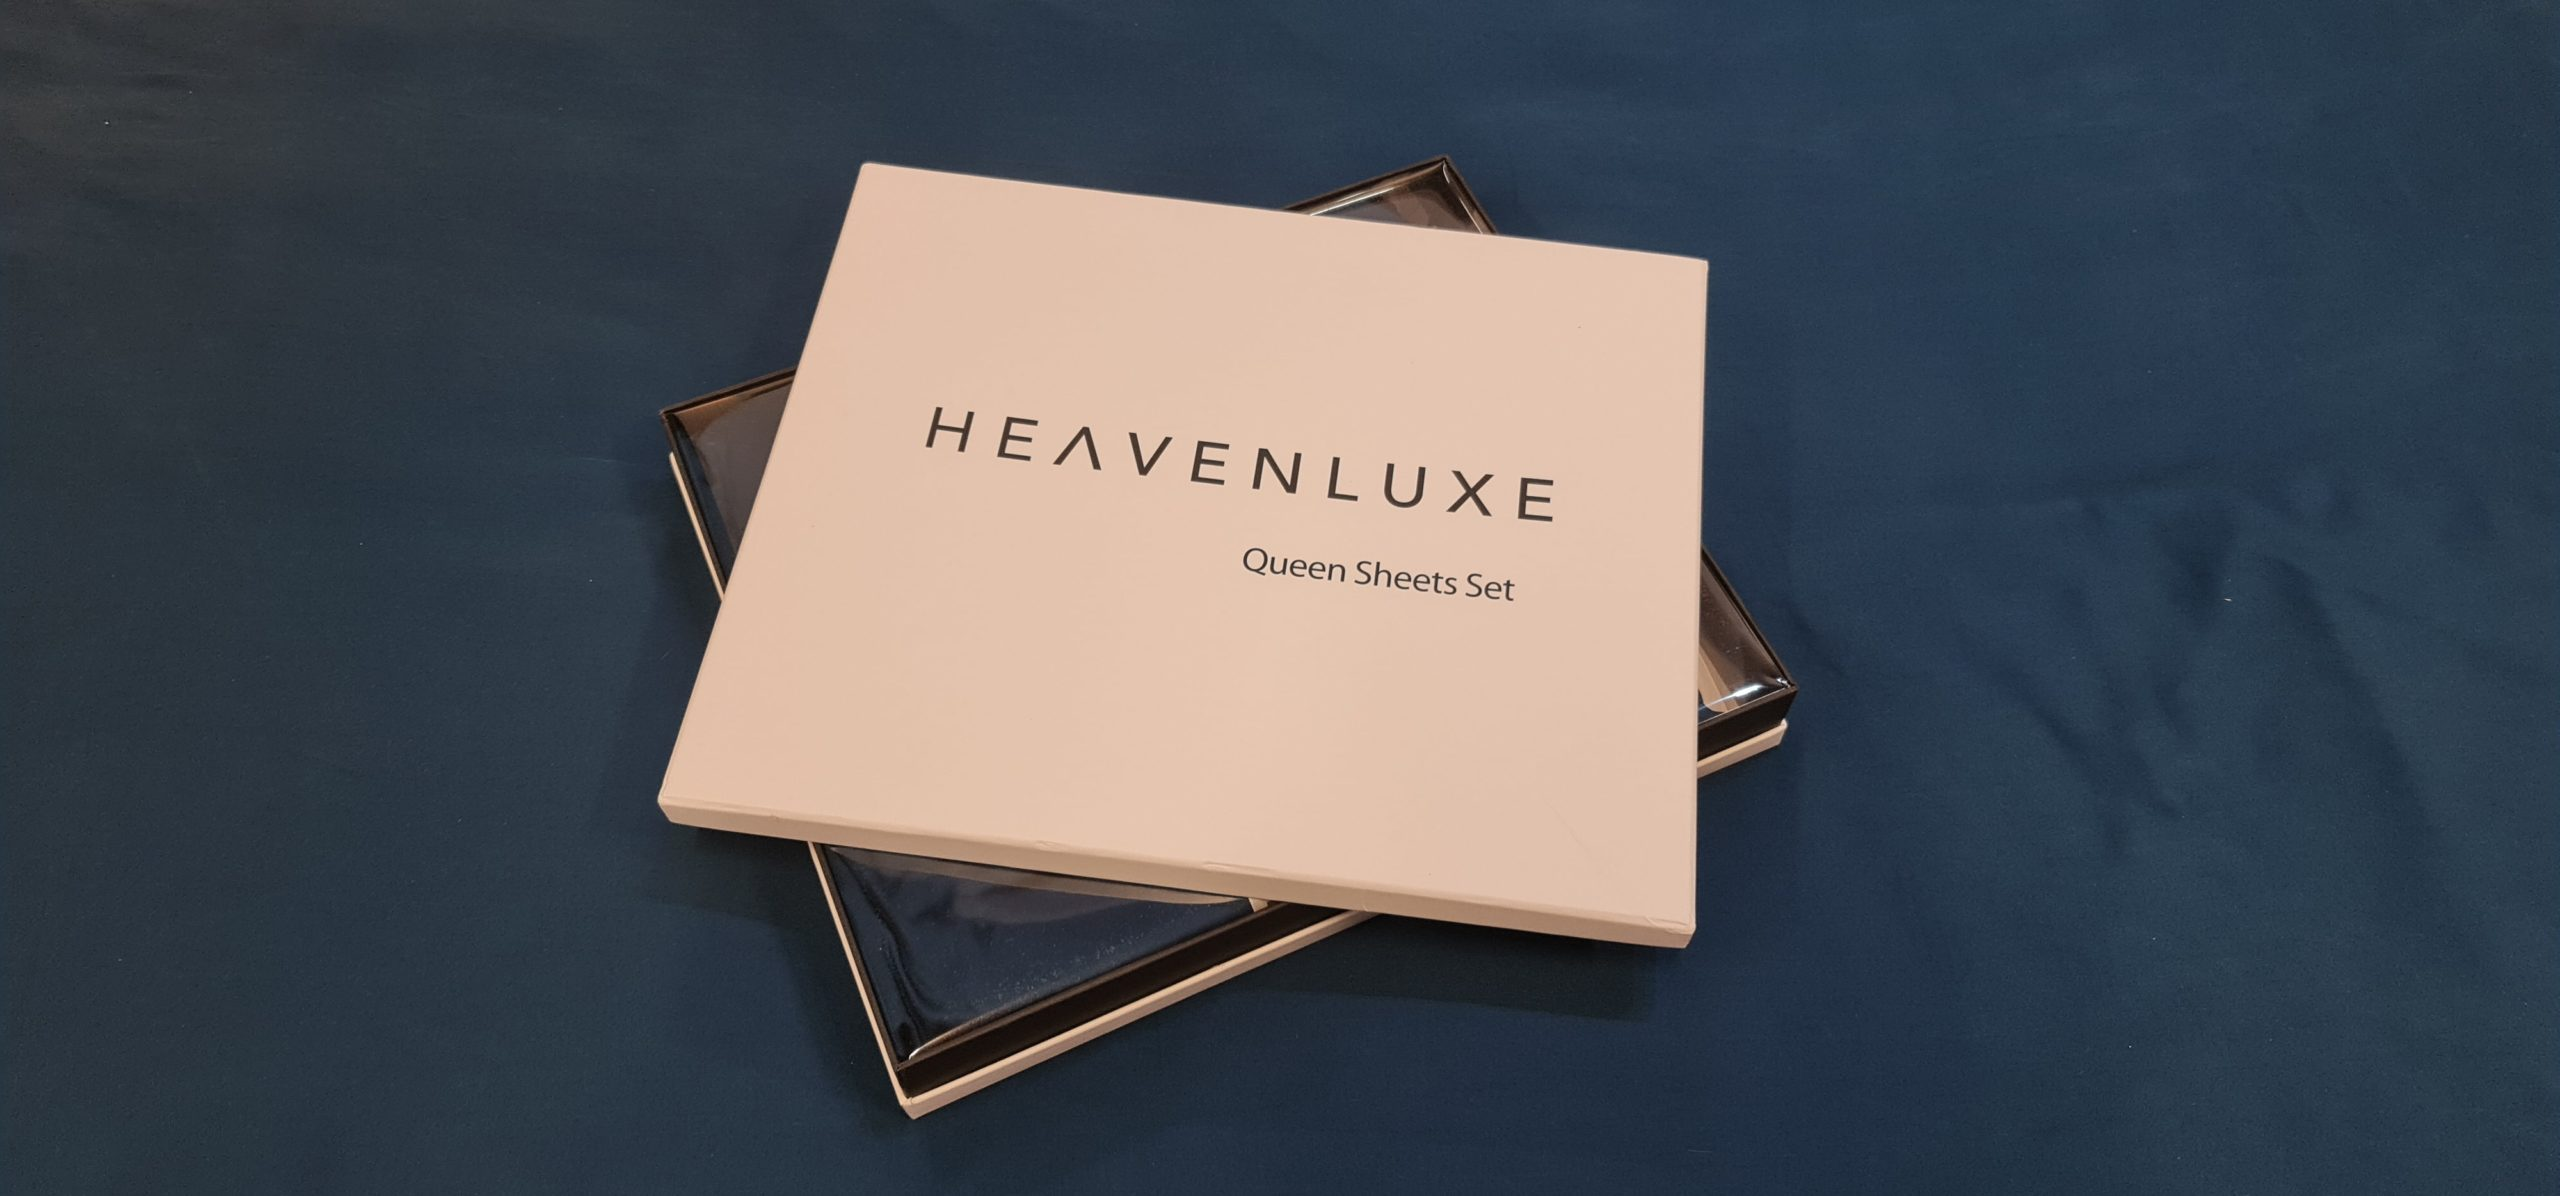 Heavenluxe Bed Sheets Review–Worth The Money?